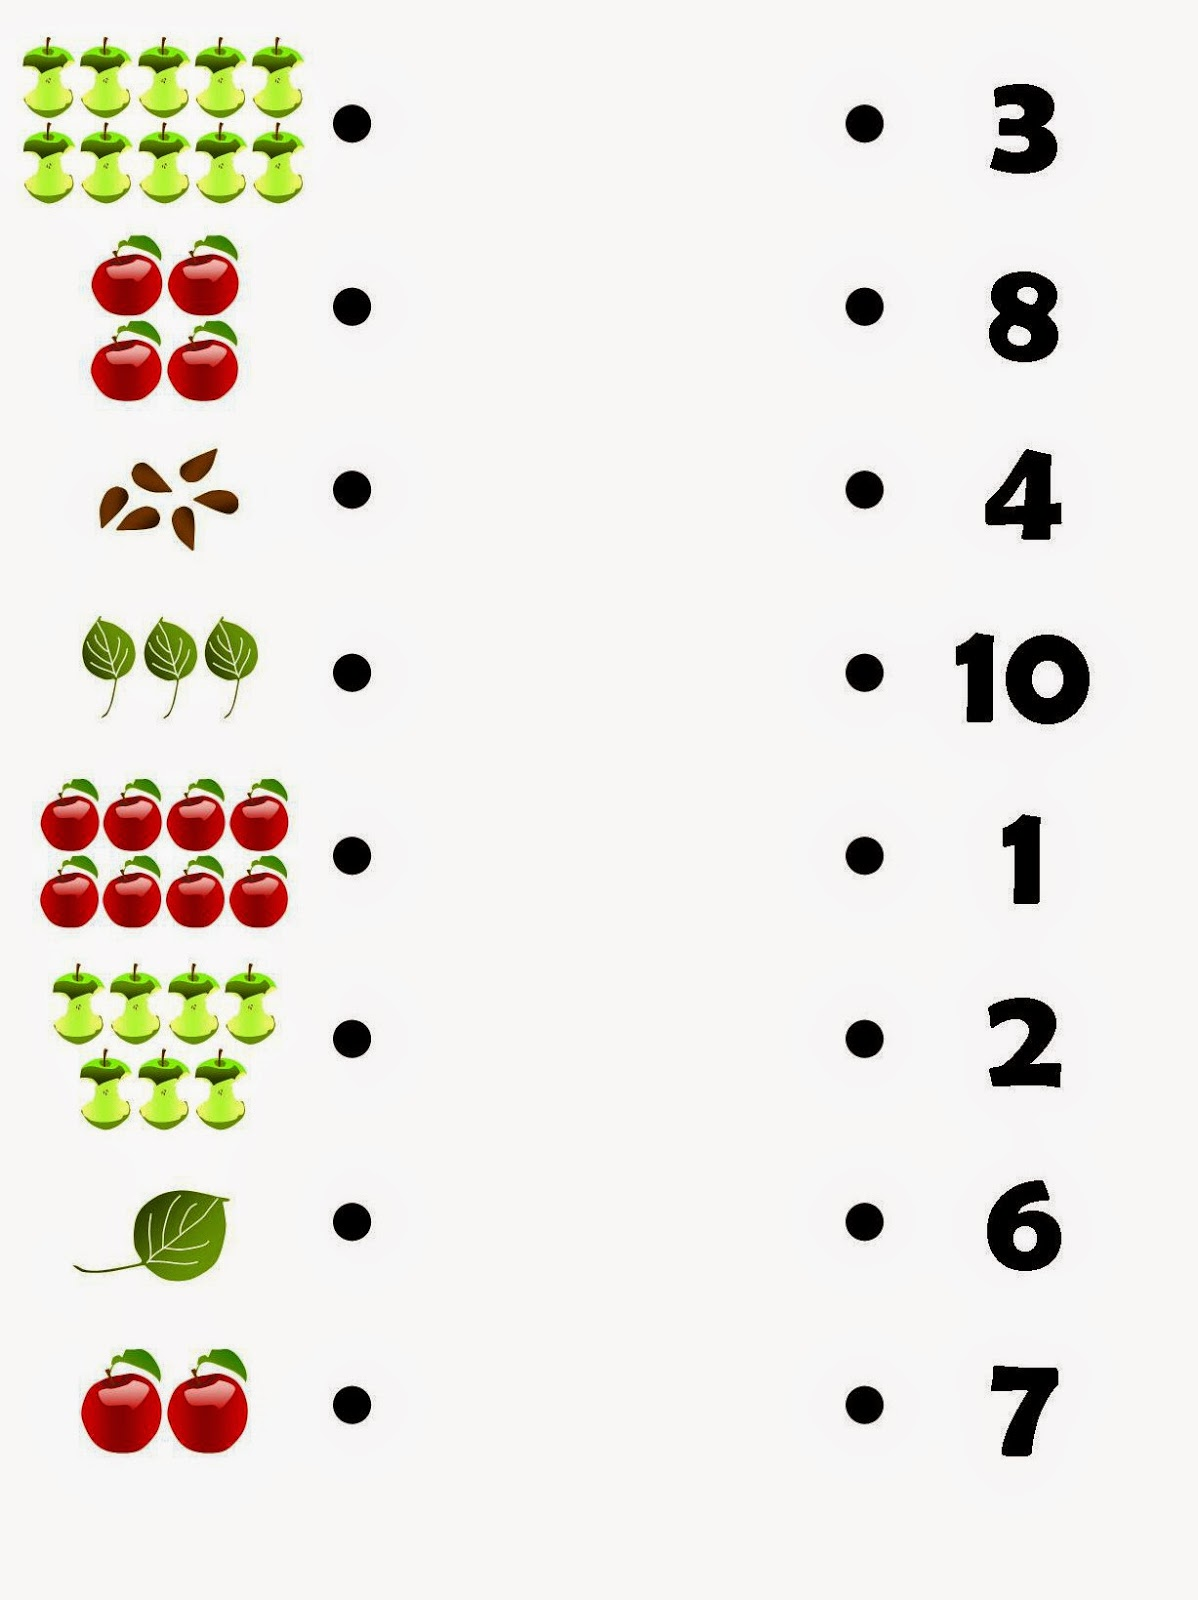 Relentlessly Fun Deceptively Educational Counting Apples